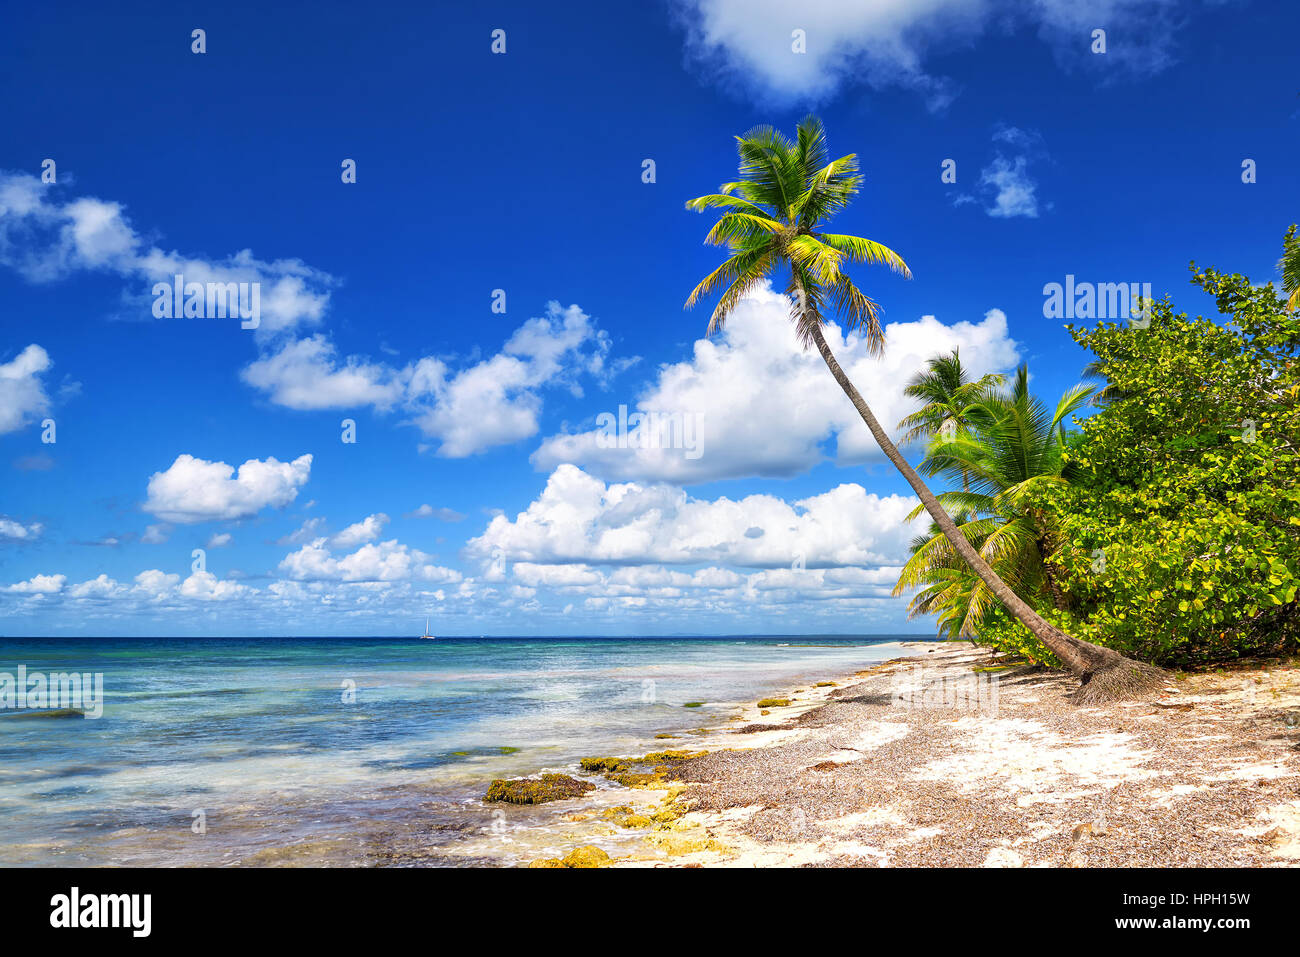 Tropical white sandy beach with palm trees. Saona Island, Dominican Republic - Stock Image